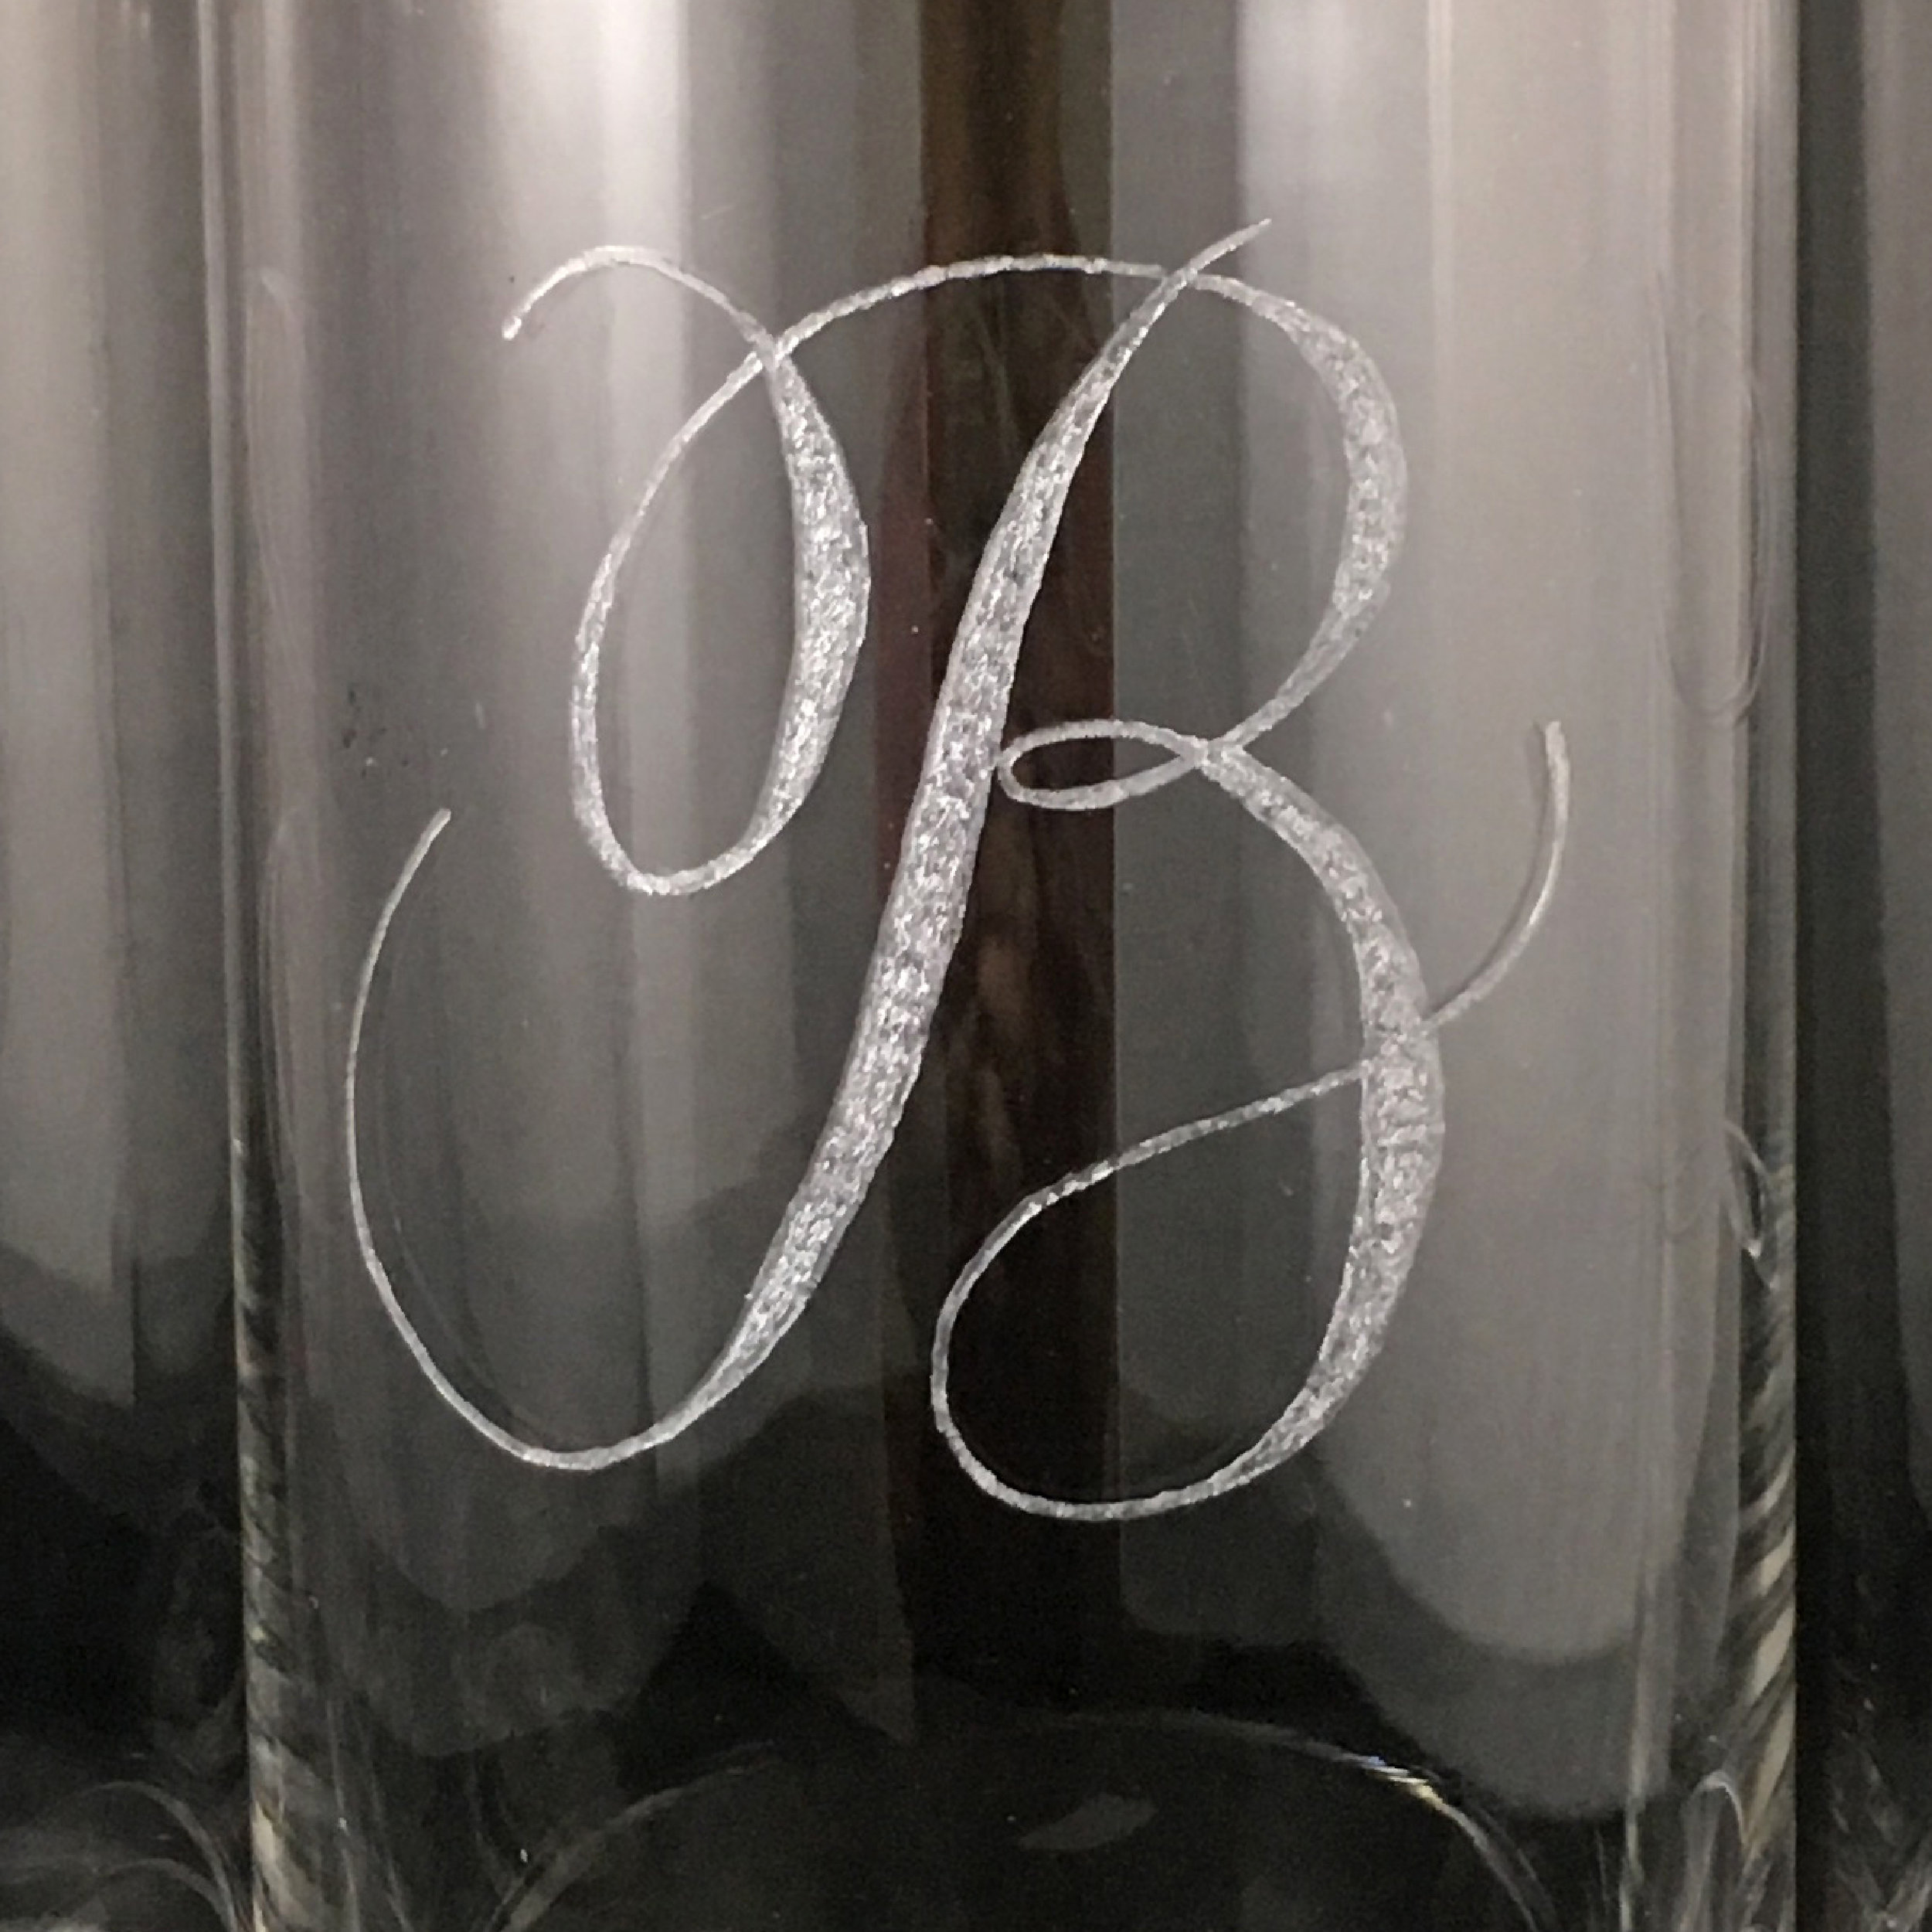 The bride and groom's logo that my client asked be to engraved on the bottle.